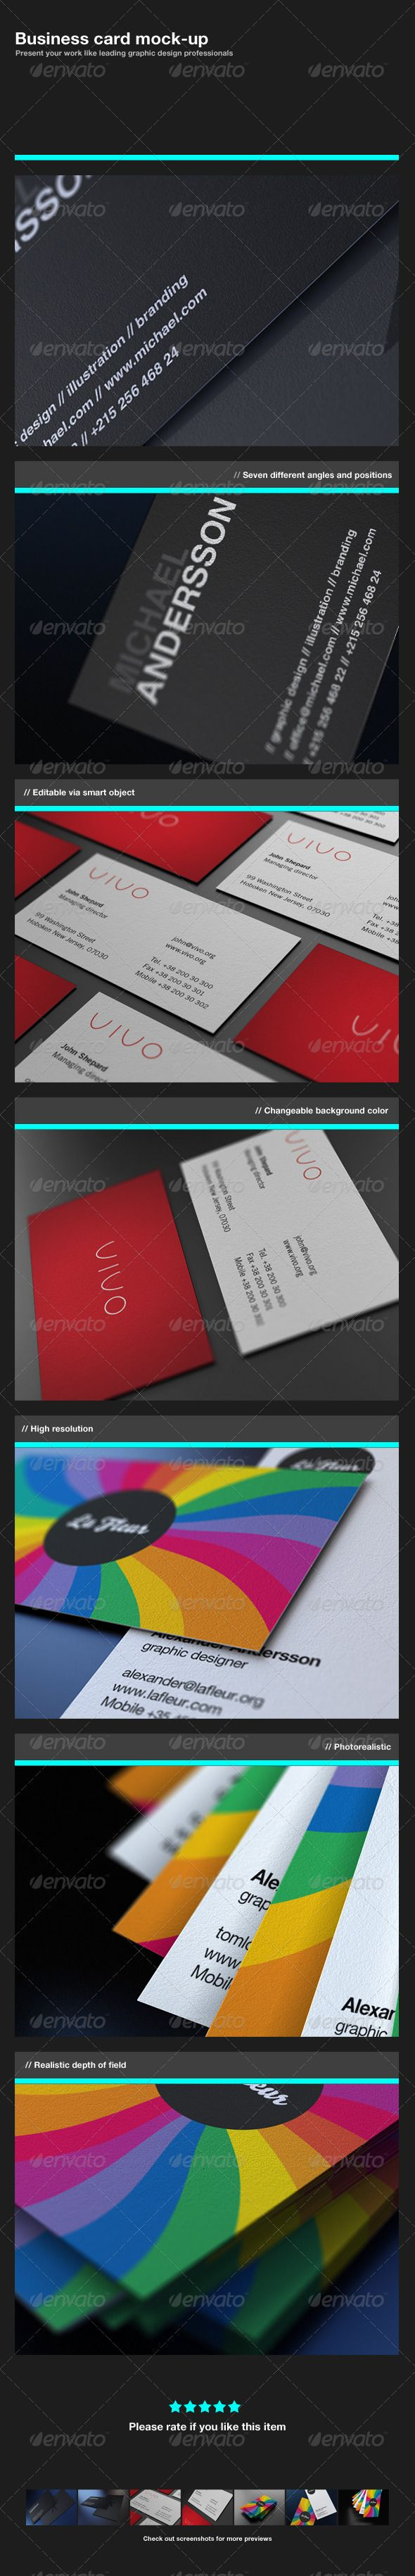 Business card mock up pinterest business cards mockup and card business card mockup photoshop psd presentation render available here httpsgraphicriveritembusiness card mockup319932refpxcr reheart Image collections